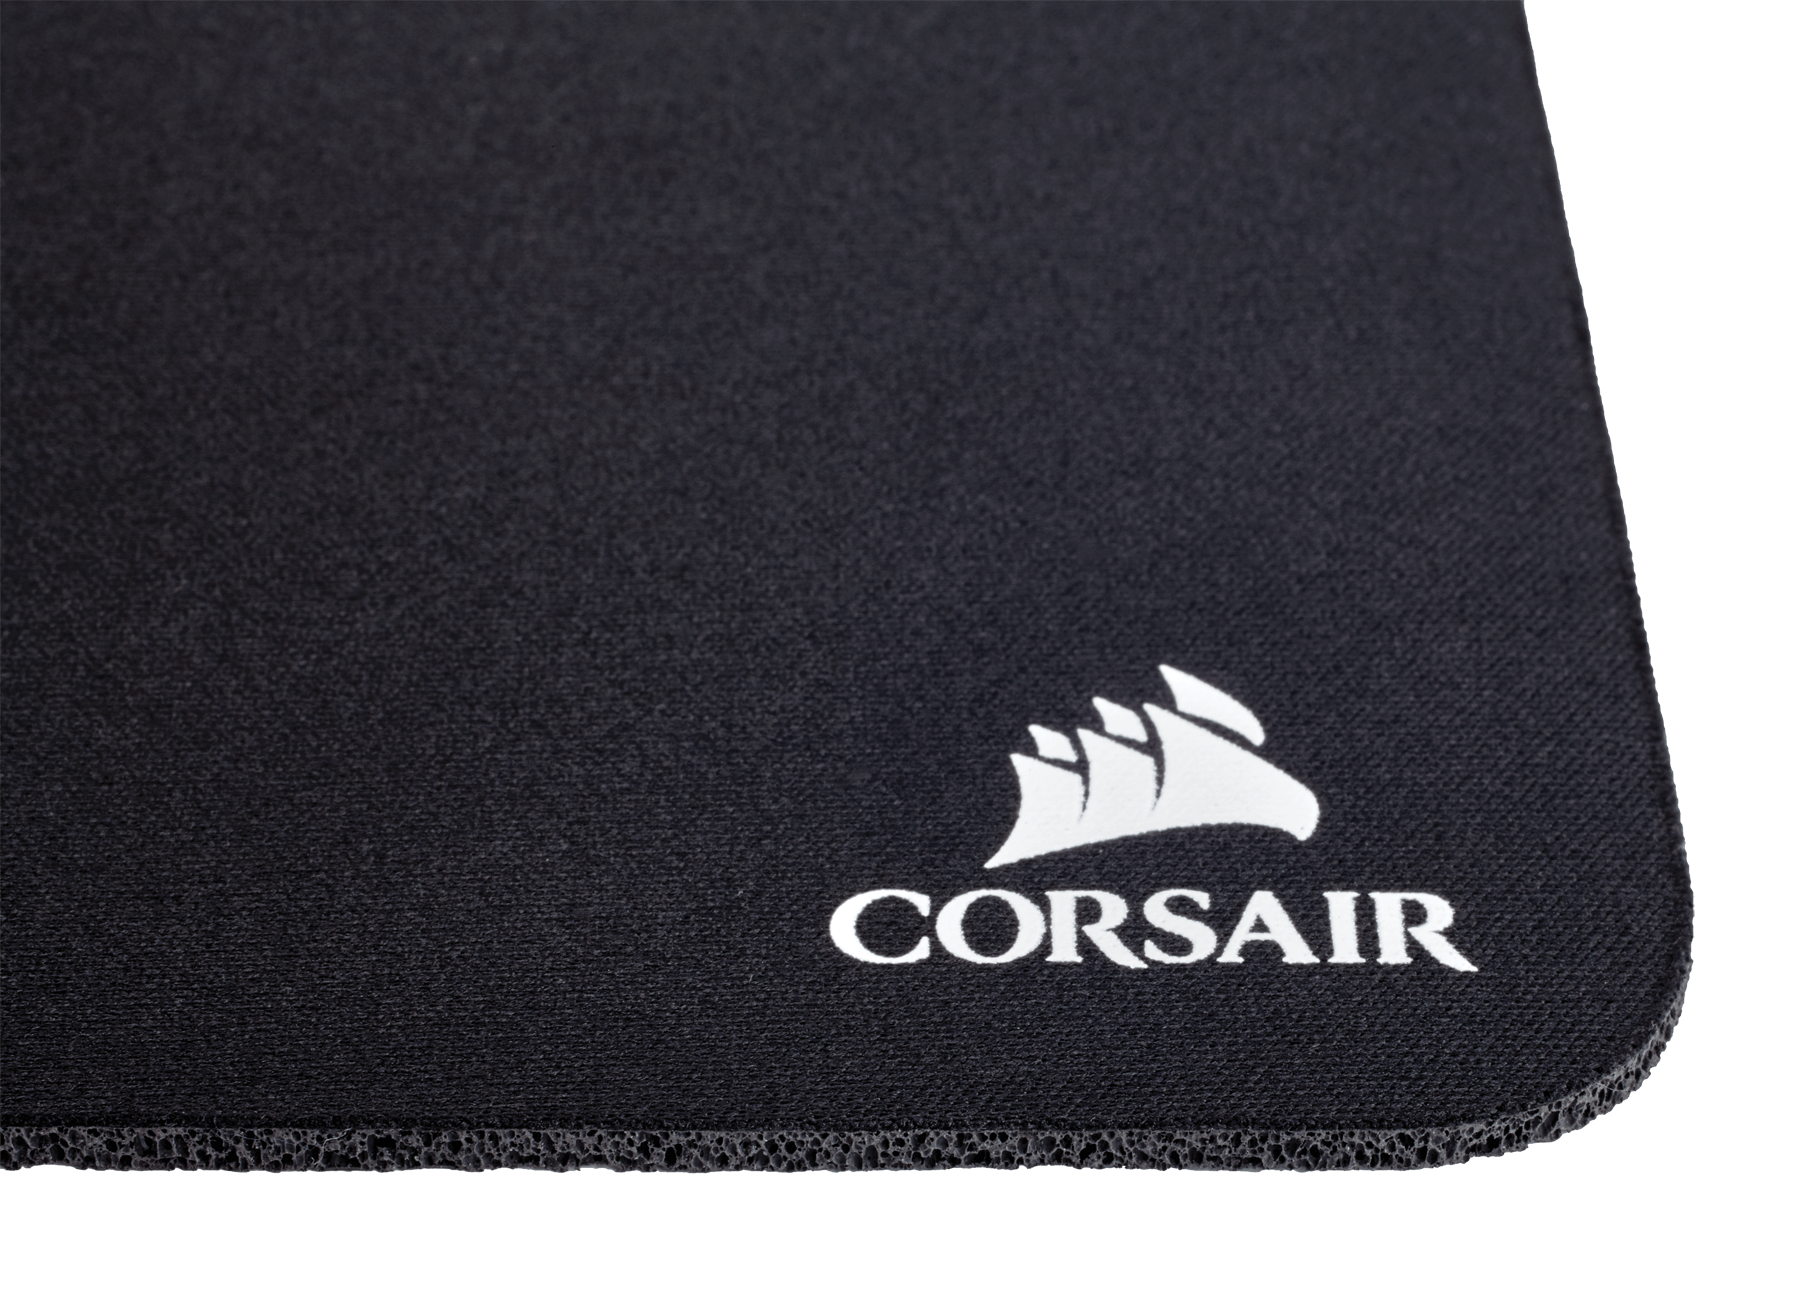 Corsair Gaming Mm100 Cloth Mouse Pad Circuit Board Motherboard Geekery